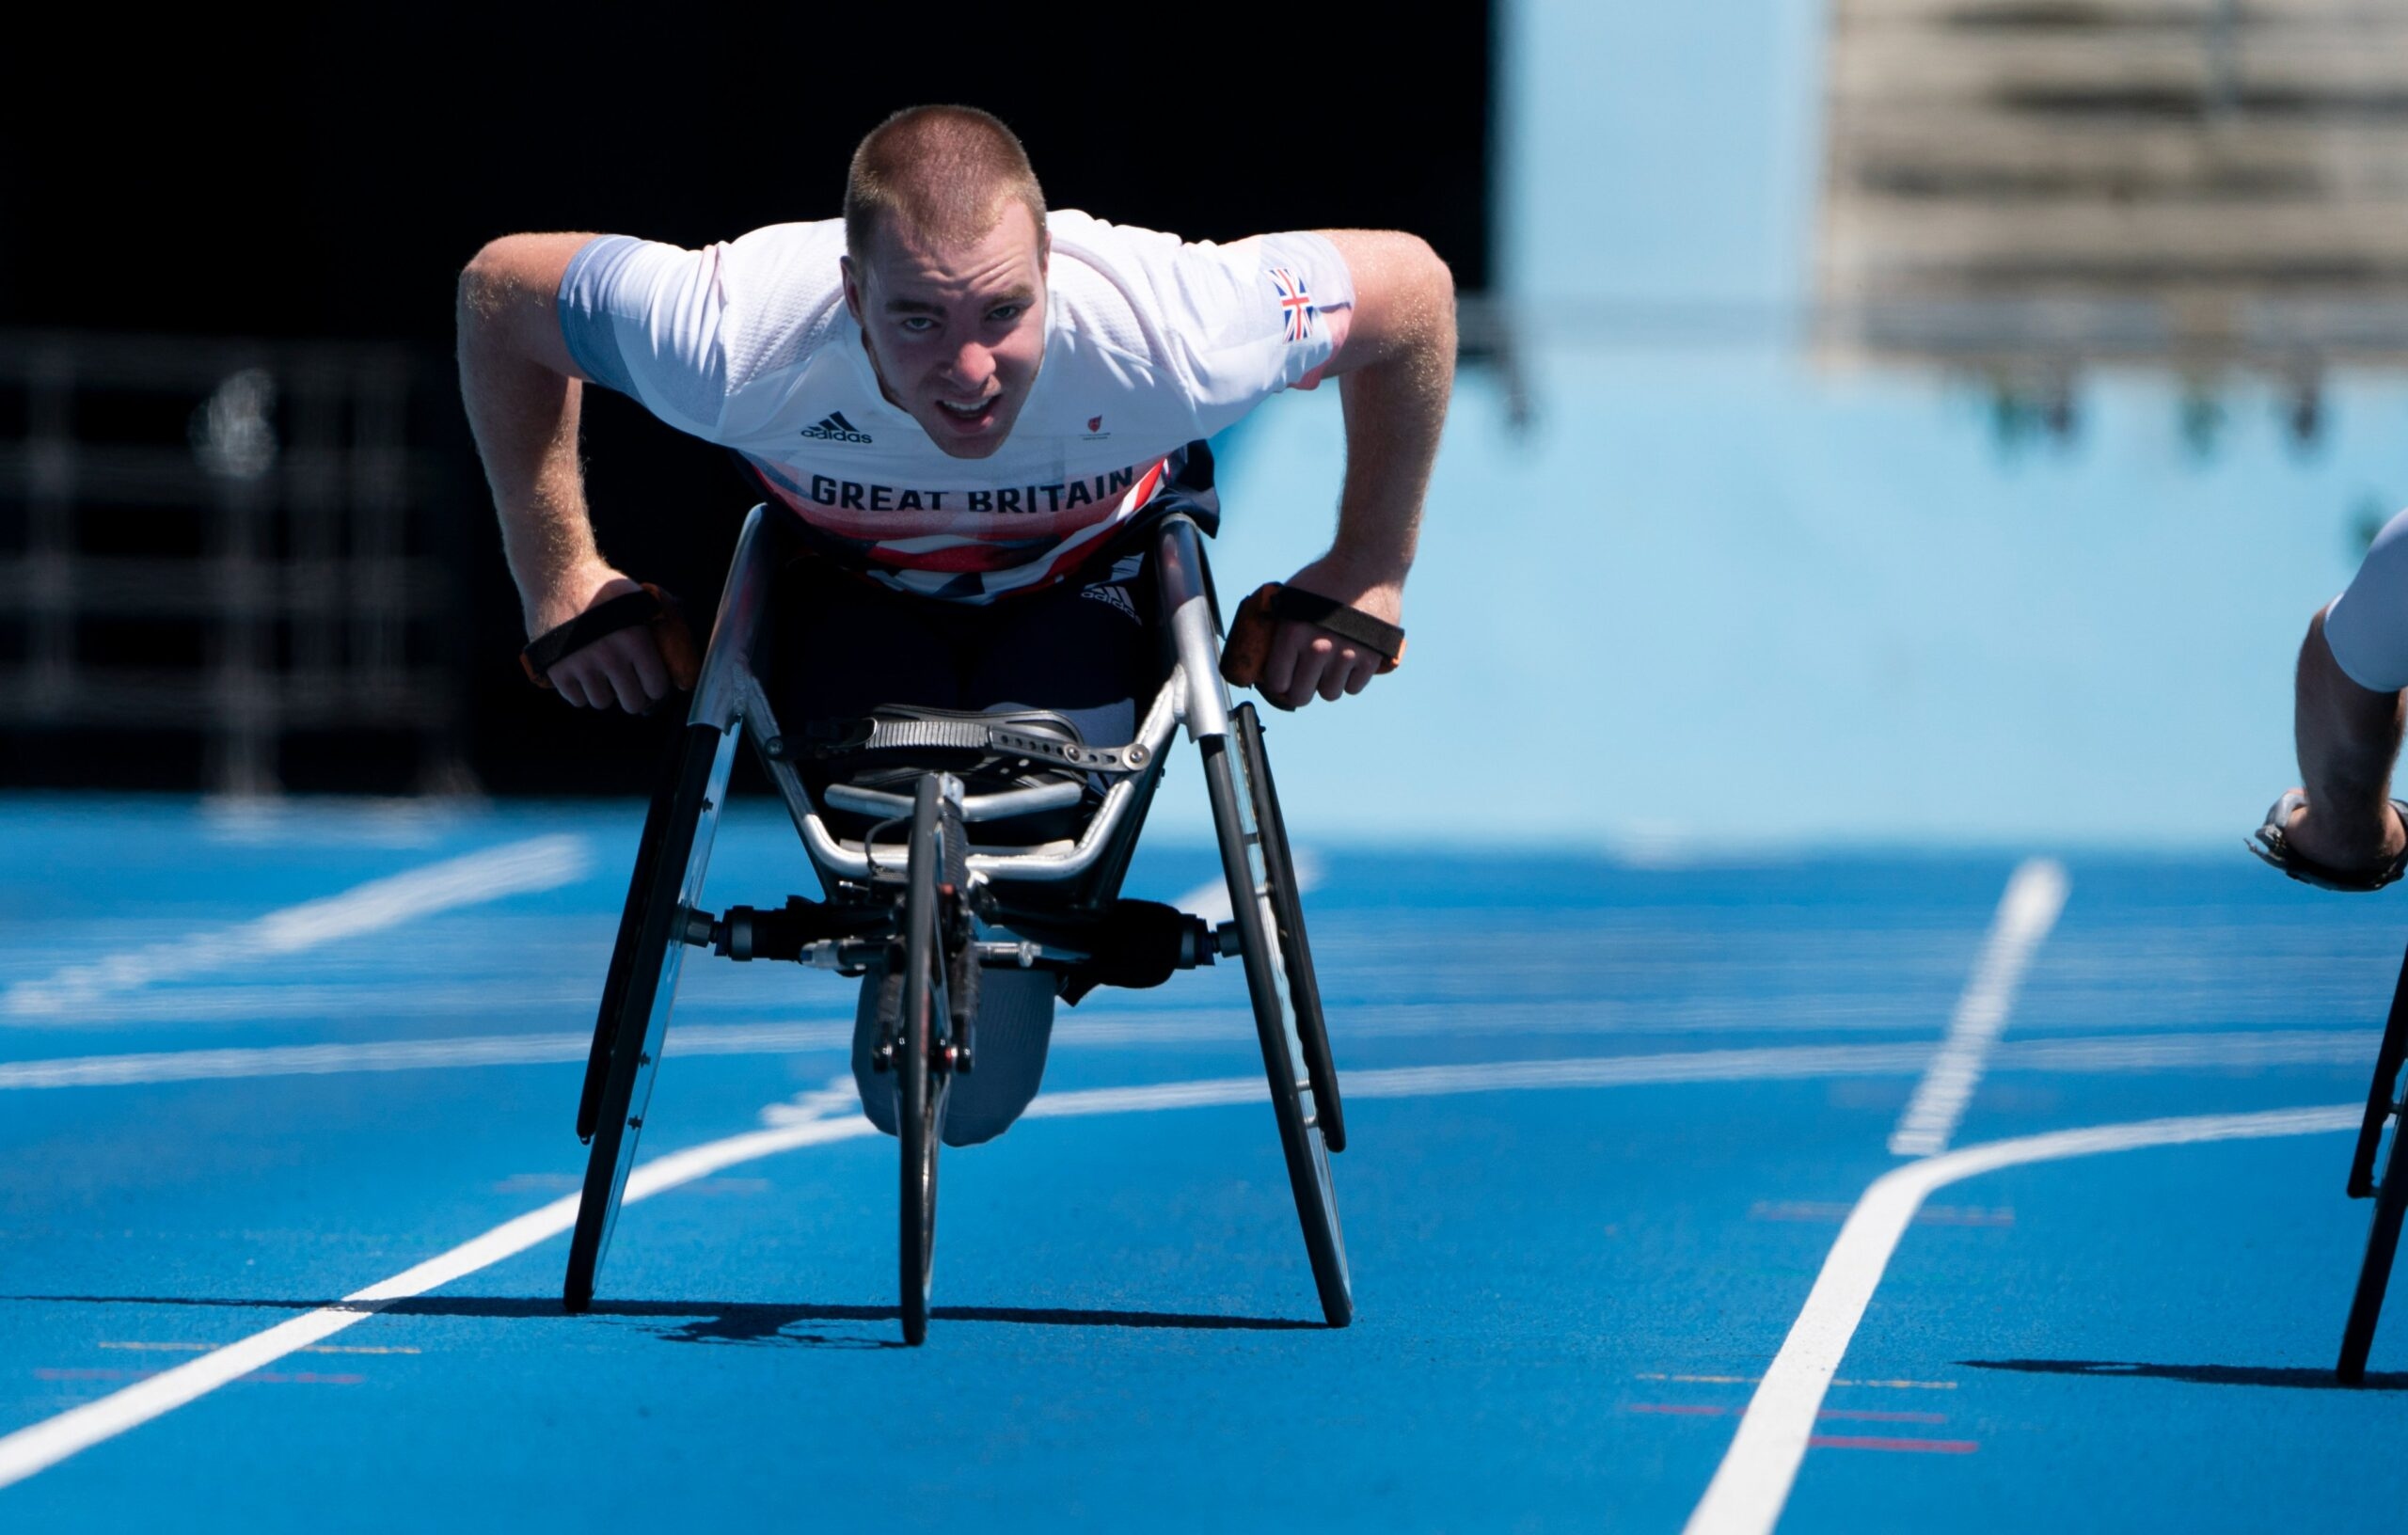 Get Kids Going! supported athlete Isaac Towers reaches Paralympic finals in 800m